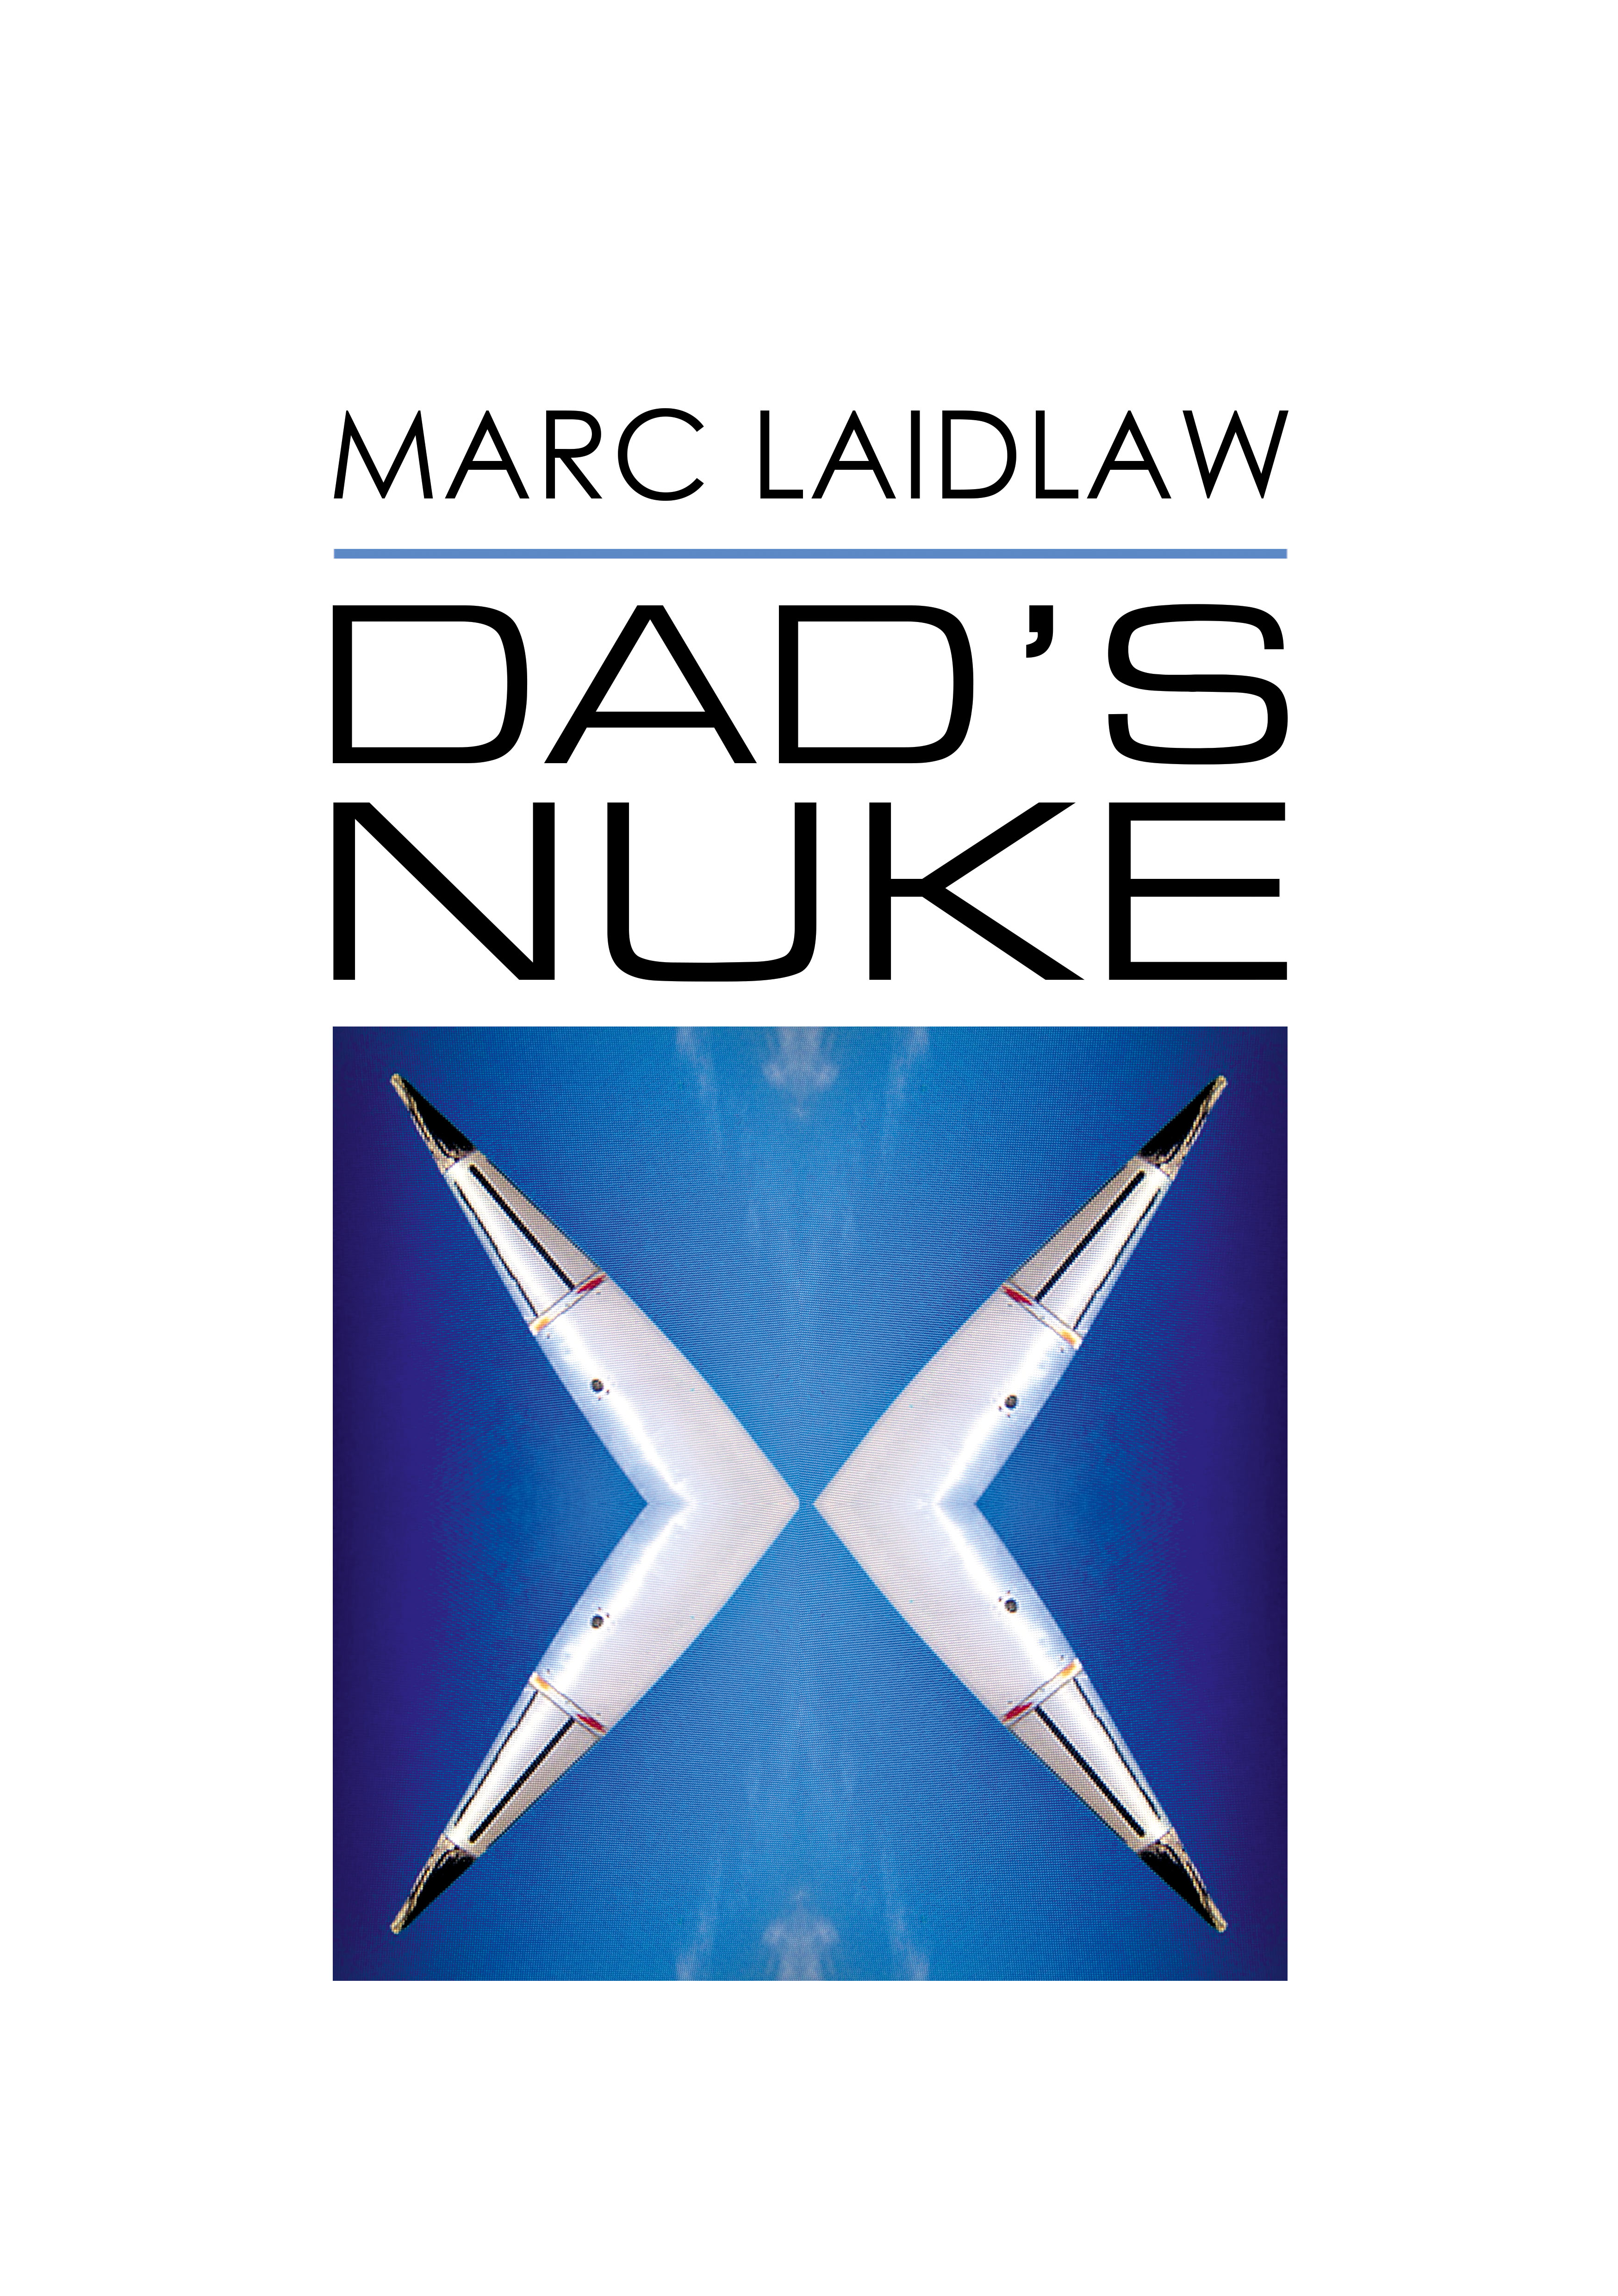 marc_laidlaw_cover_the_dads_nuke_06_29_2016